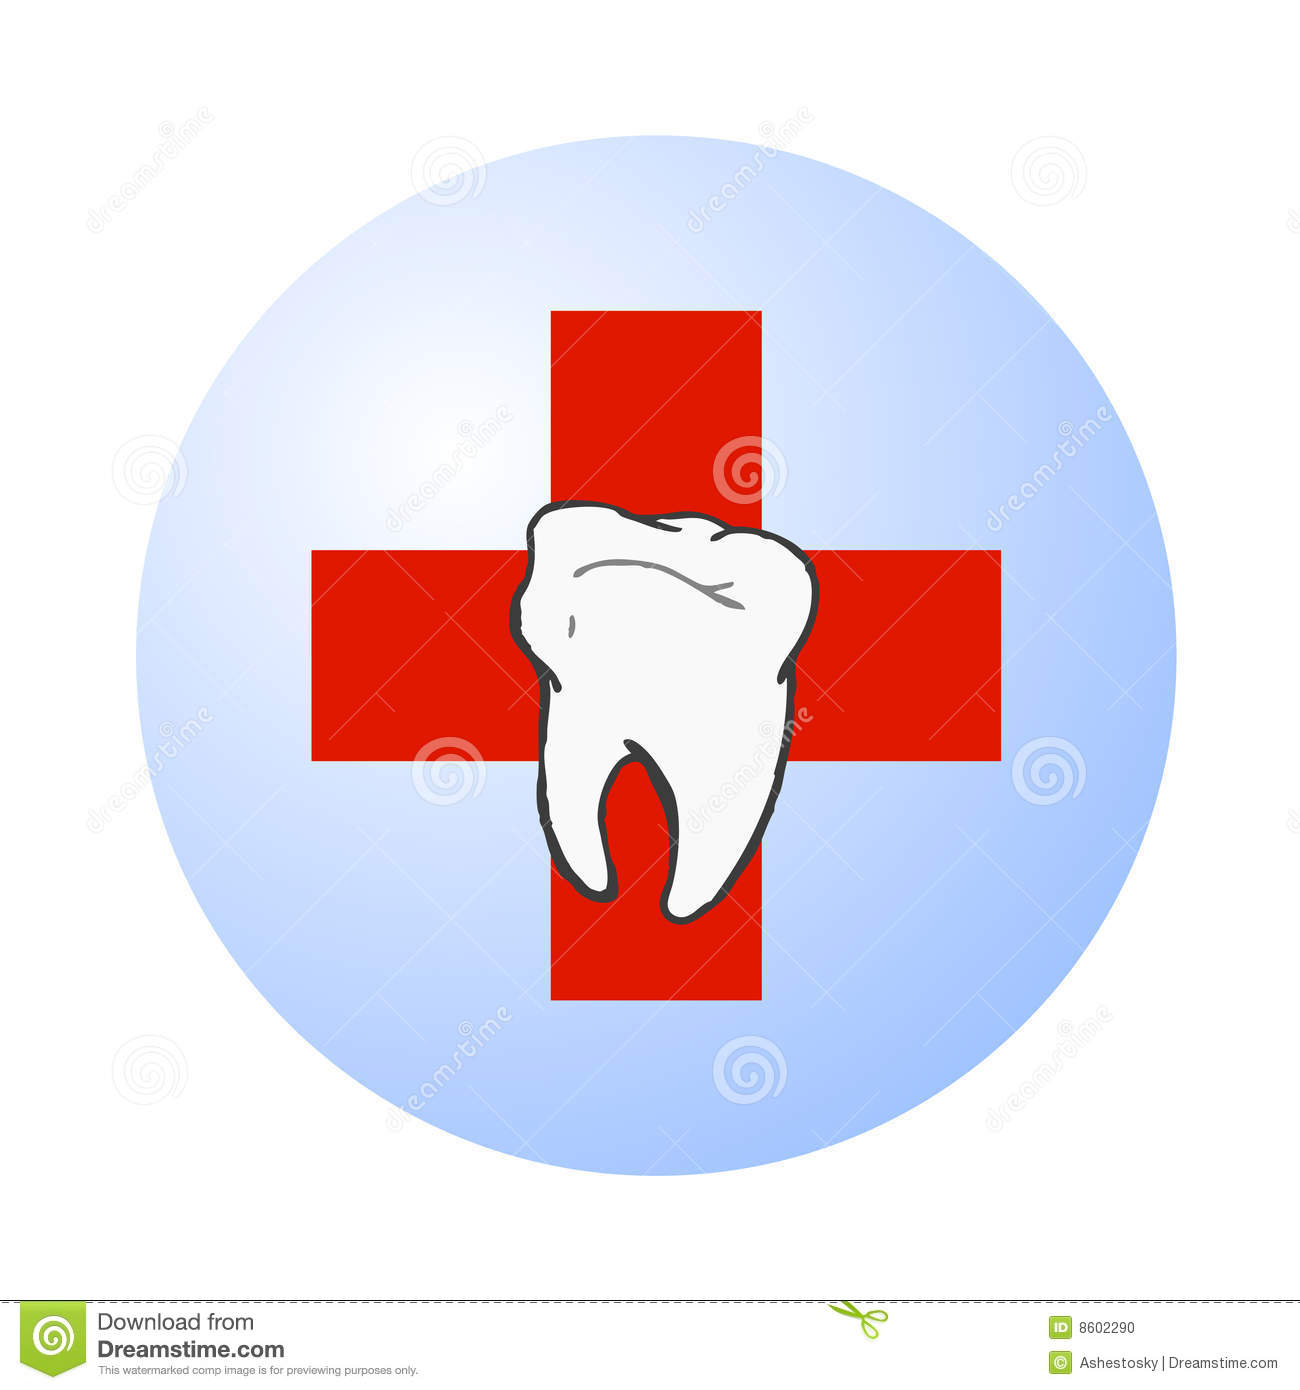 Dentist Logo Stock Photos, Images, & Pictures - 1,574 Images